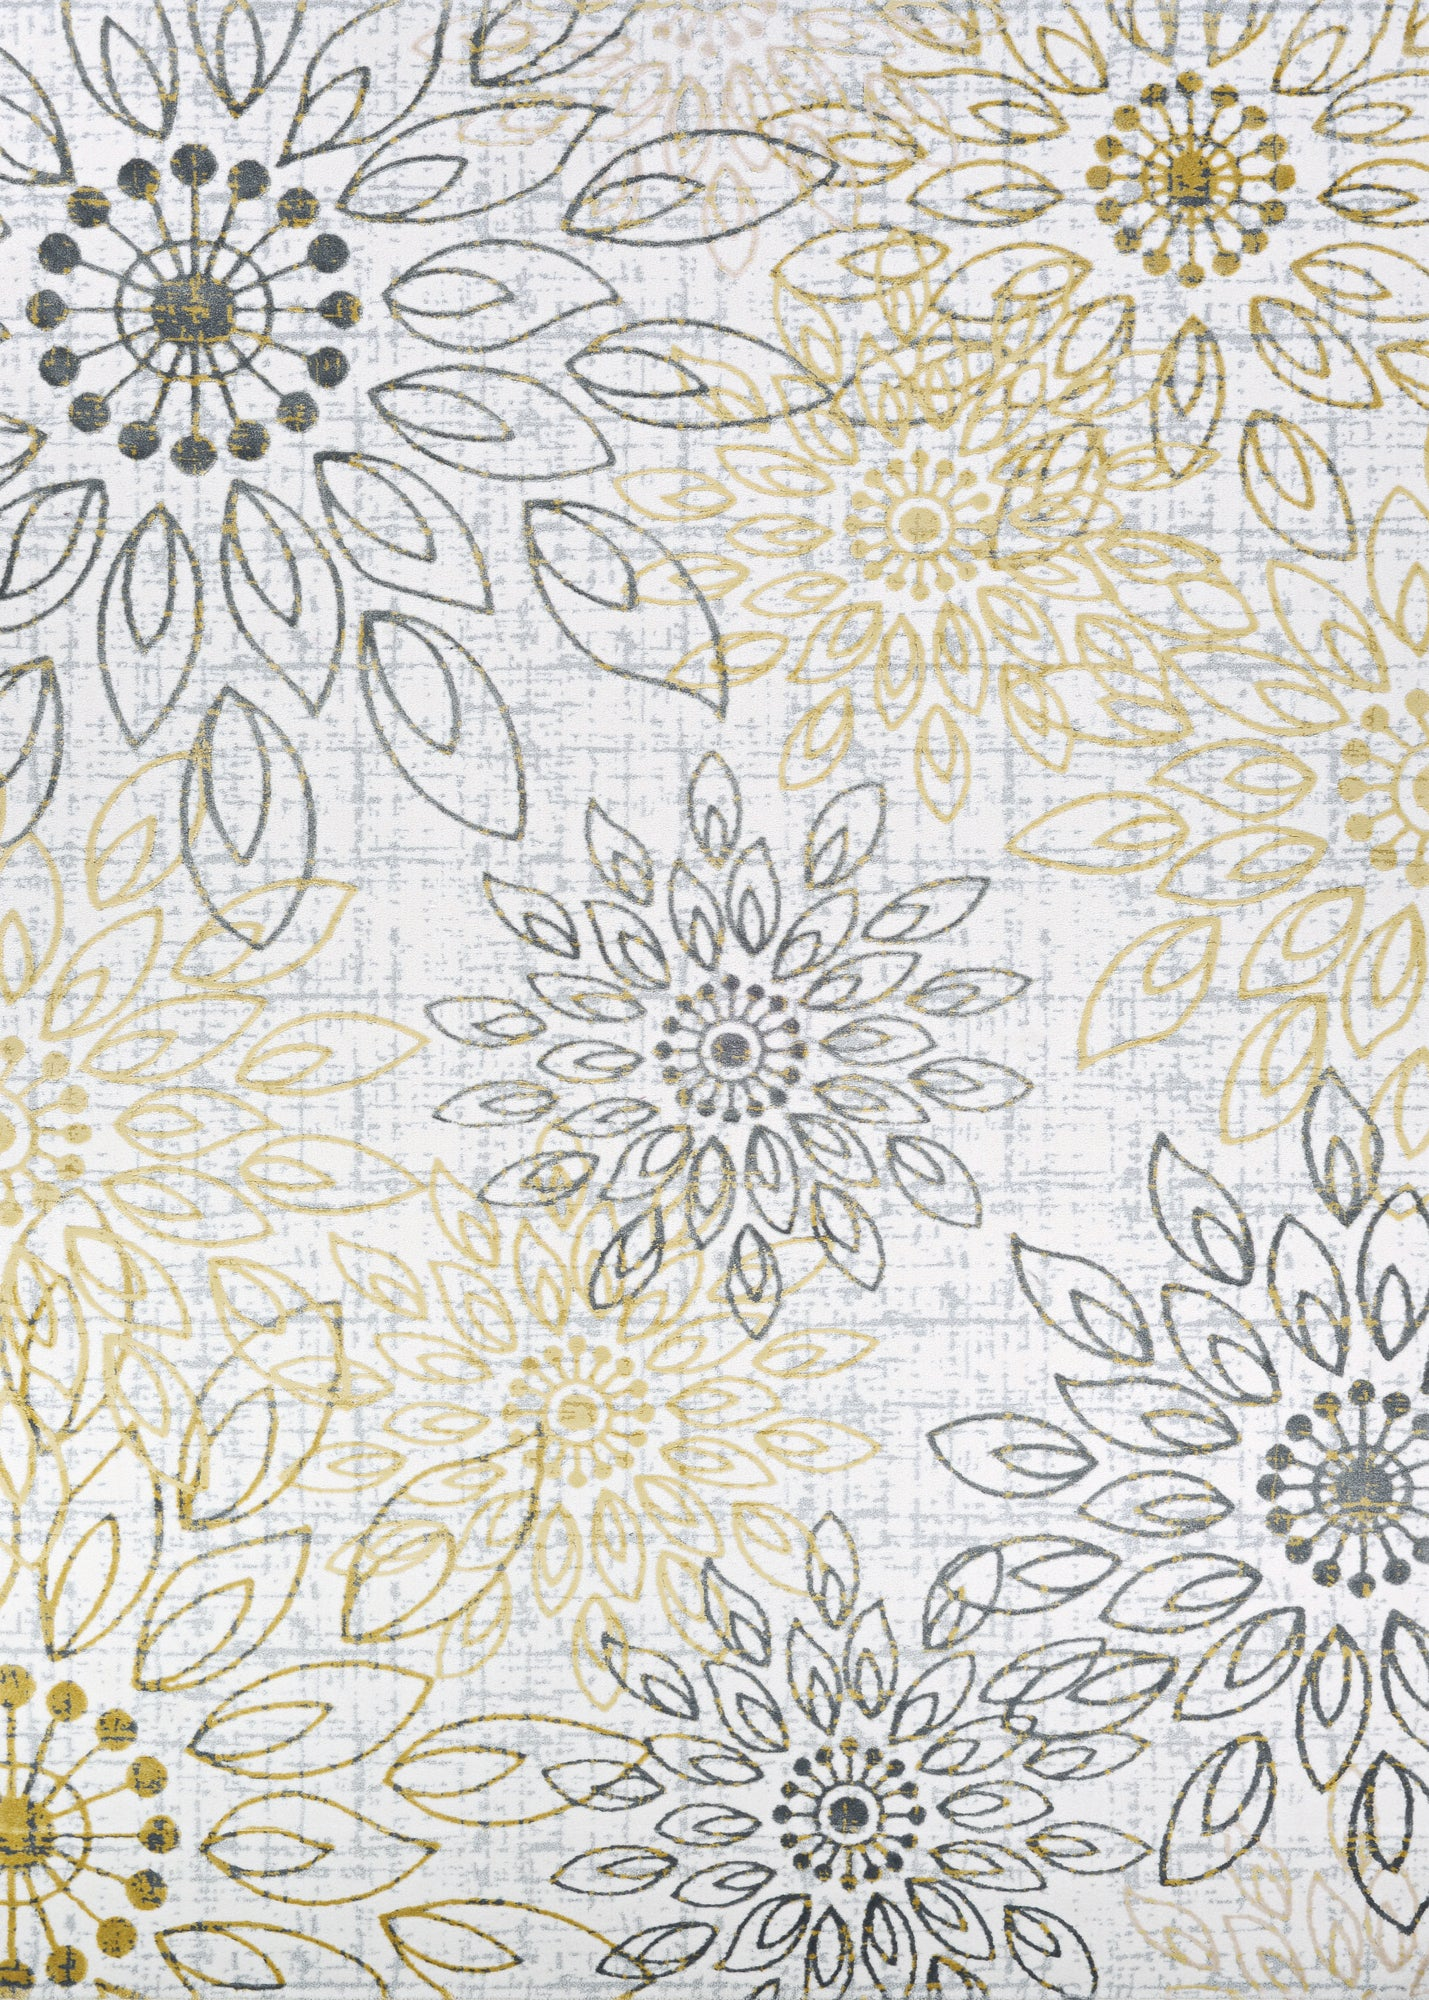 Couristan Calinda Summer Bliss Gold/Silver/Ivry Area Rug main image